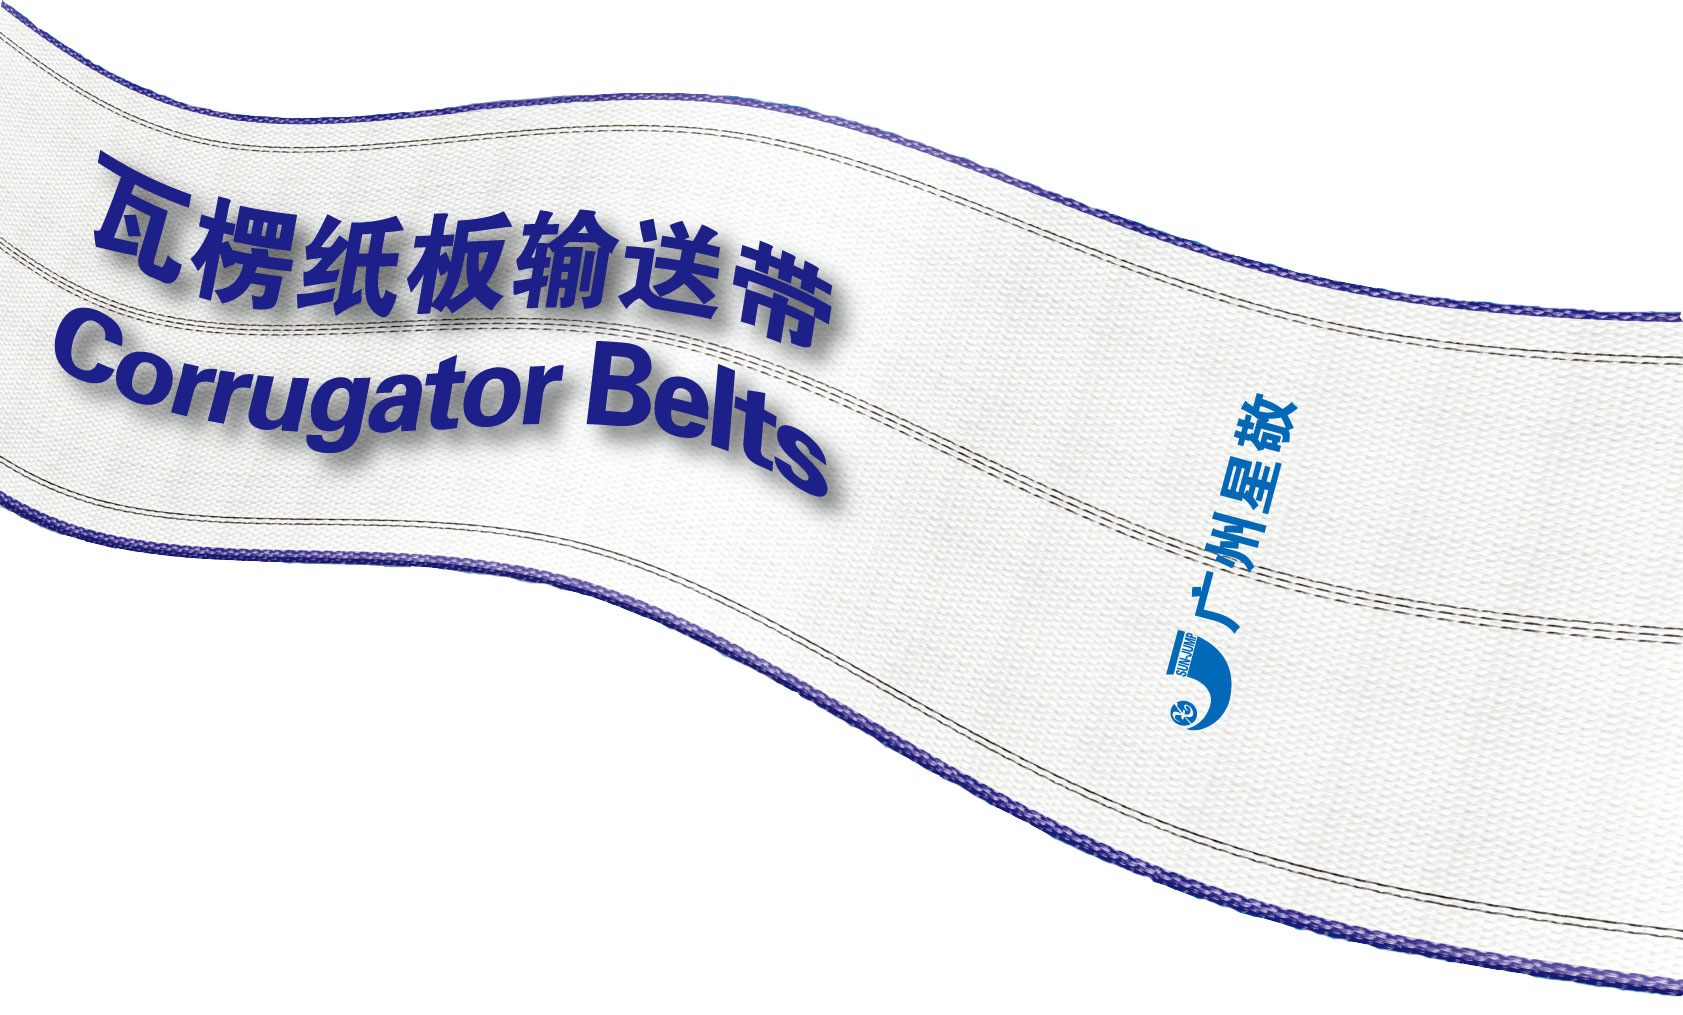 SJ Corrugator Belts catalog